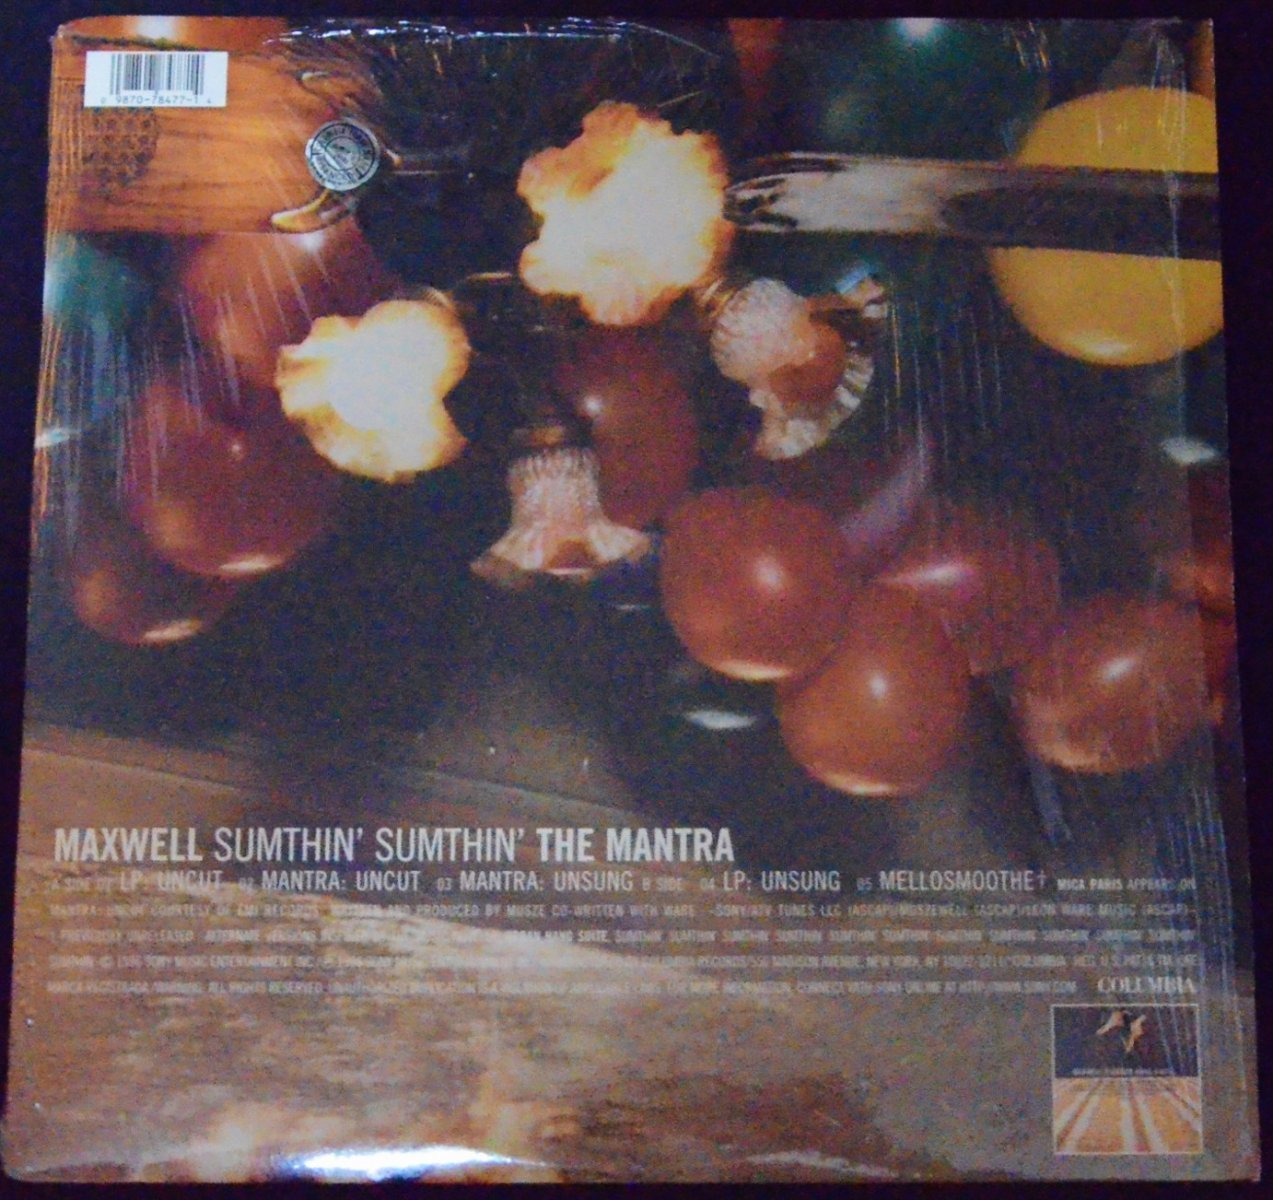 MAXWELL ‎/ SUMTHIN' SUMTHIN': THE MANTRA (12